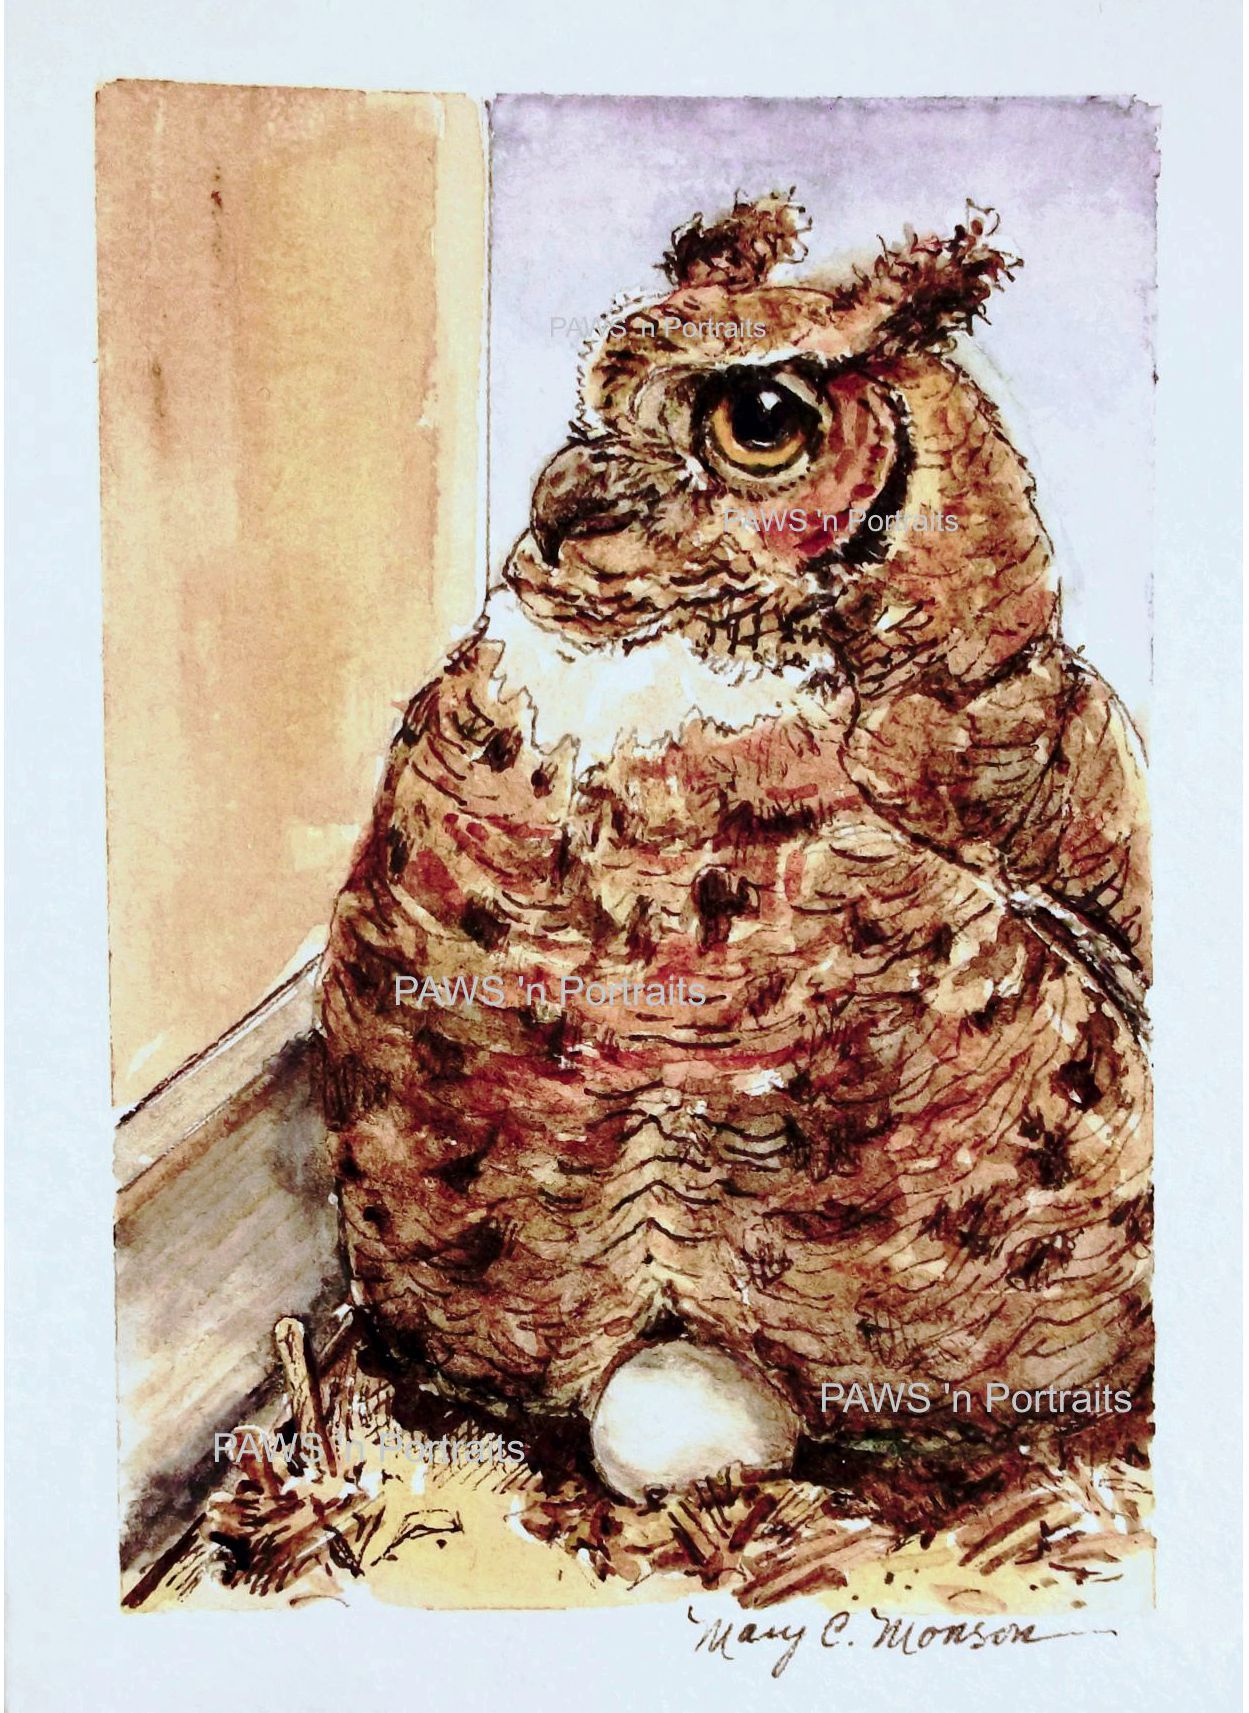 Mrs tiger on her egg sabre first owlet of the season in 2014 watercolor and ink on strathmore greeting card stock with envelope paws n portraits by mary c monson kristyandbryce Choice Image